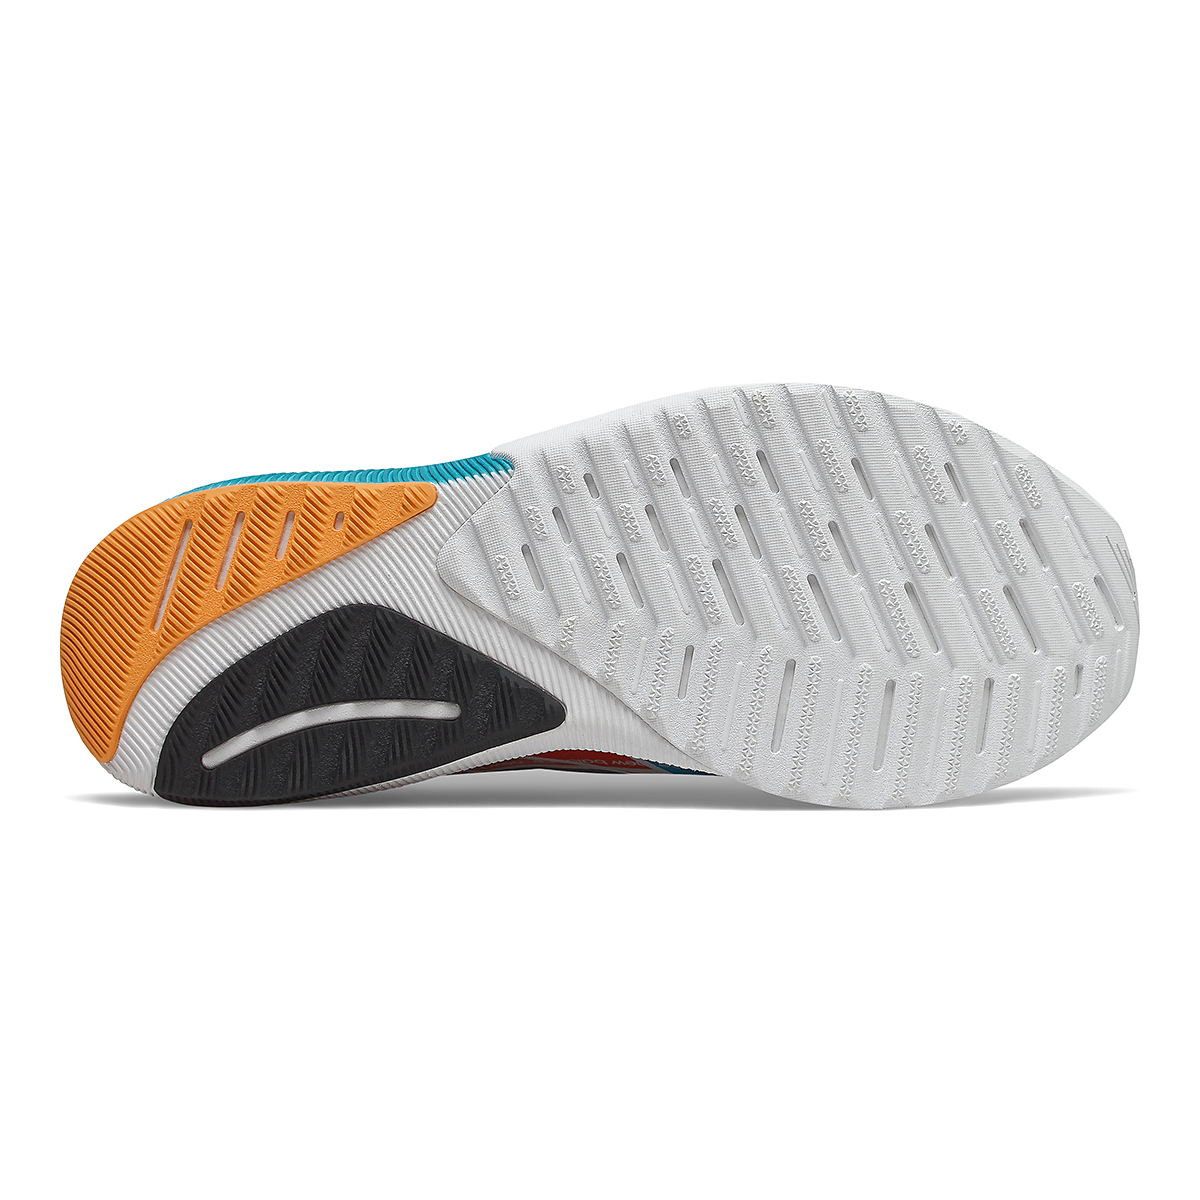 Men's New Balance Fuelcell Propel V2 Running Shoe - Color: Ocean Grey/Virtual Sky/Ghost Pepper - Size: 7 - Width: Regular, Ocean Grey/Virtual Sky/Ghost Pepper, large, image 4